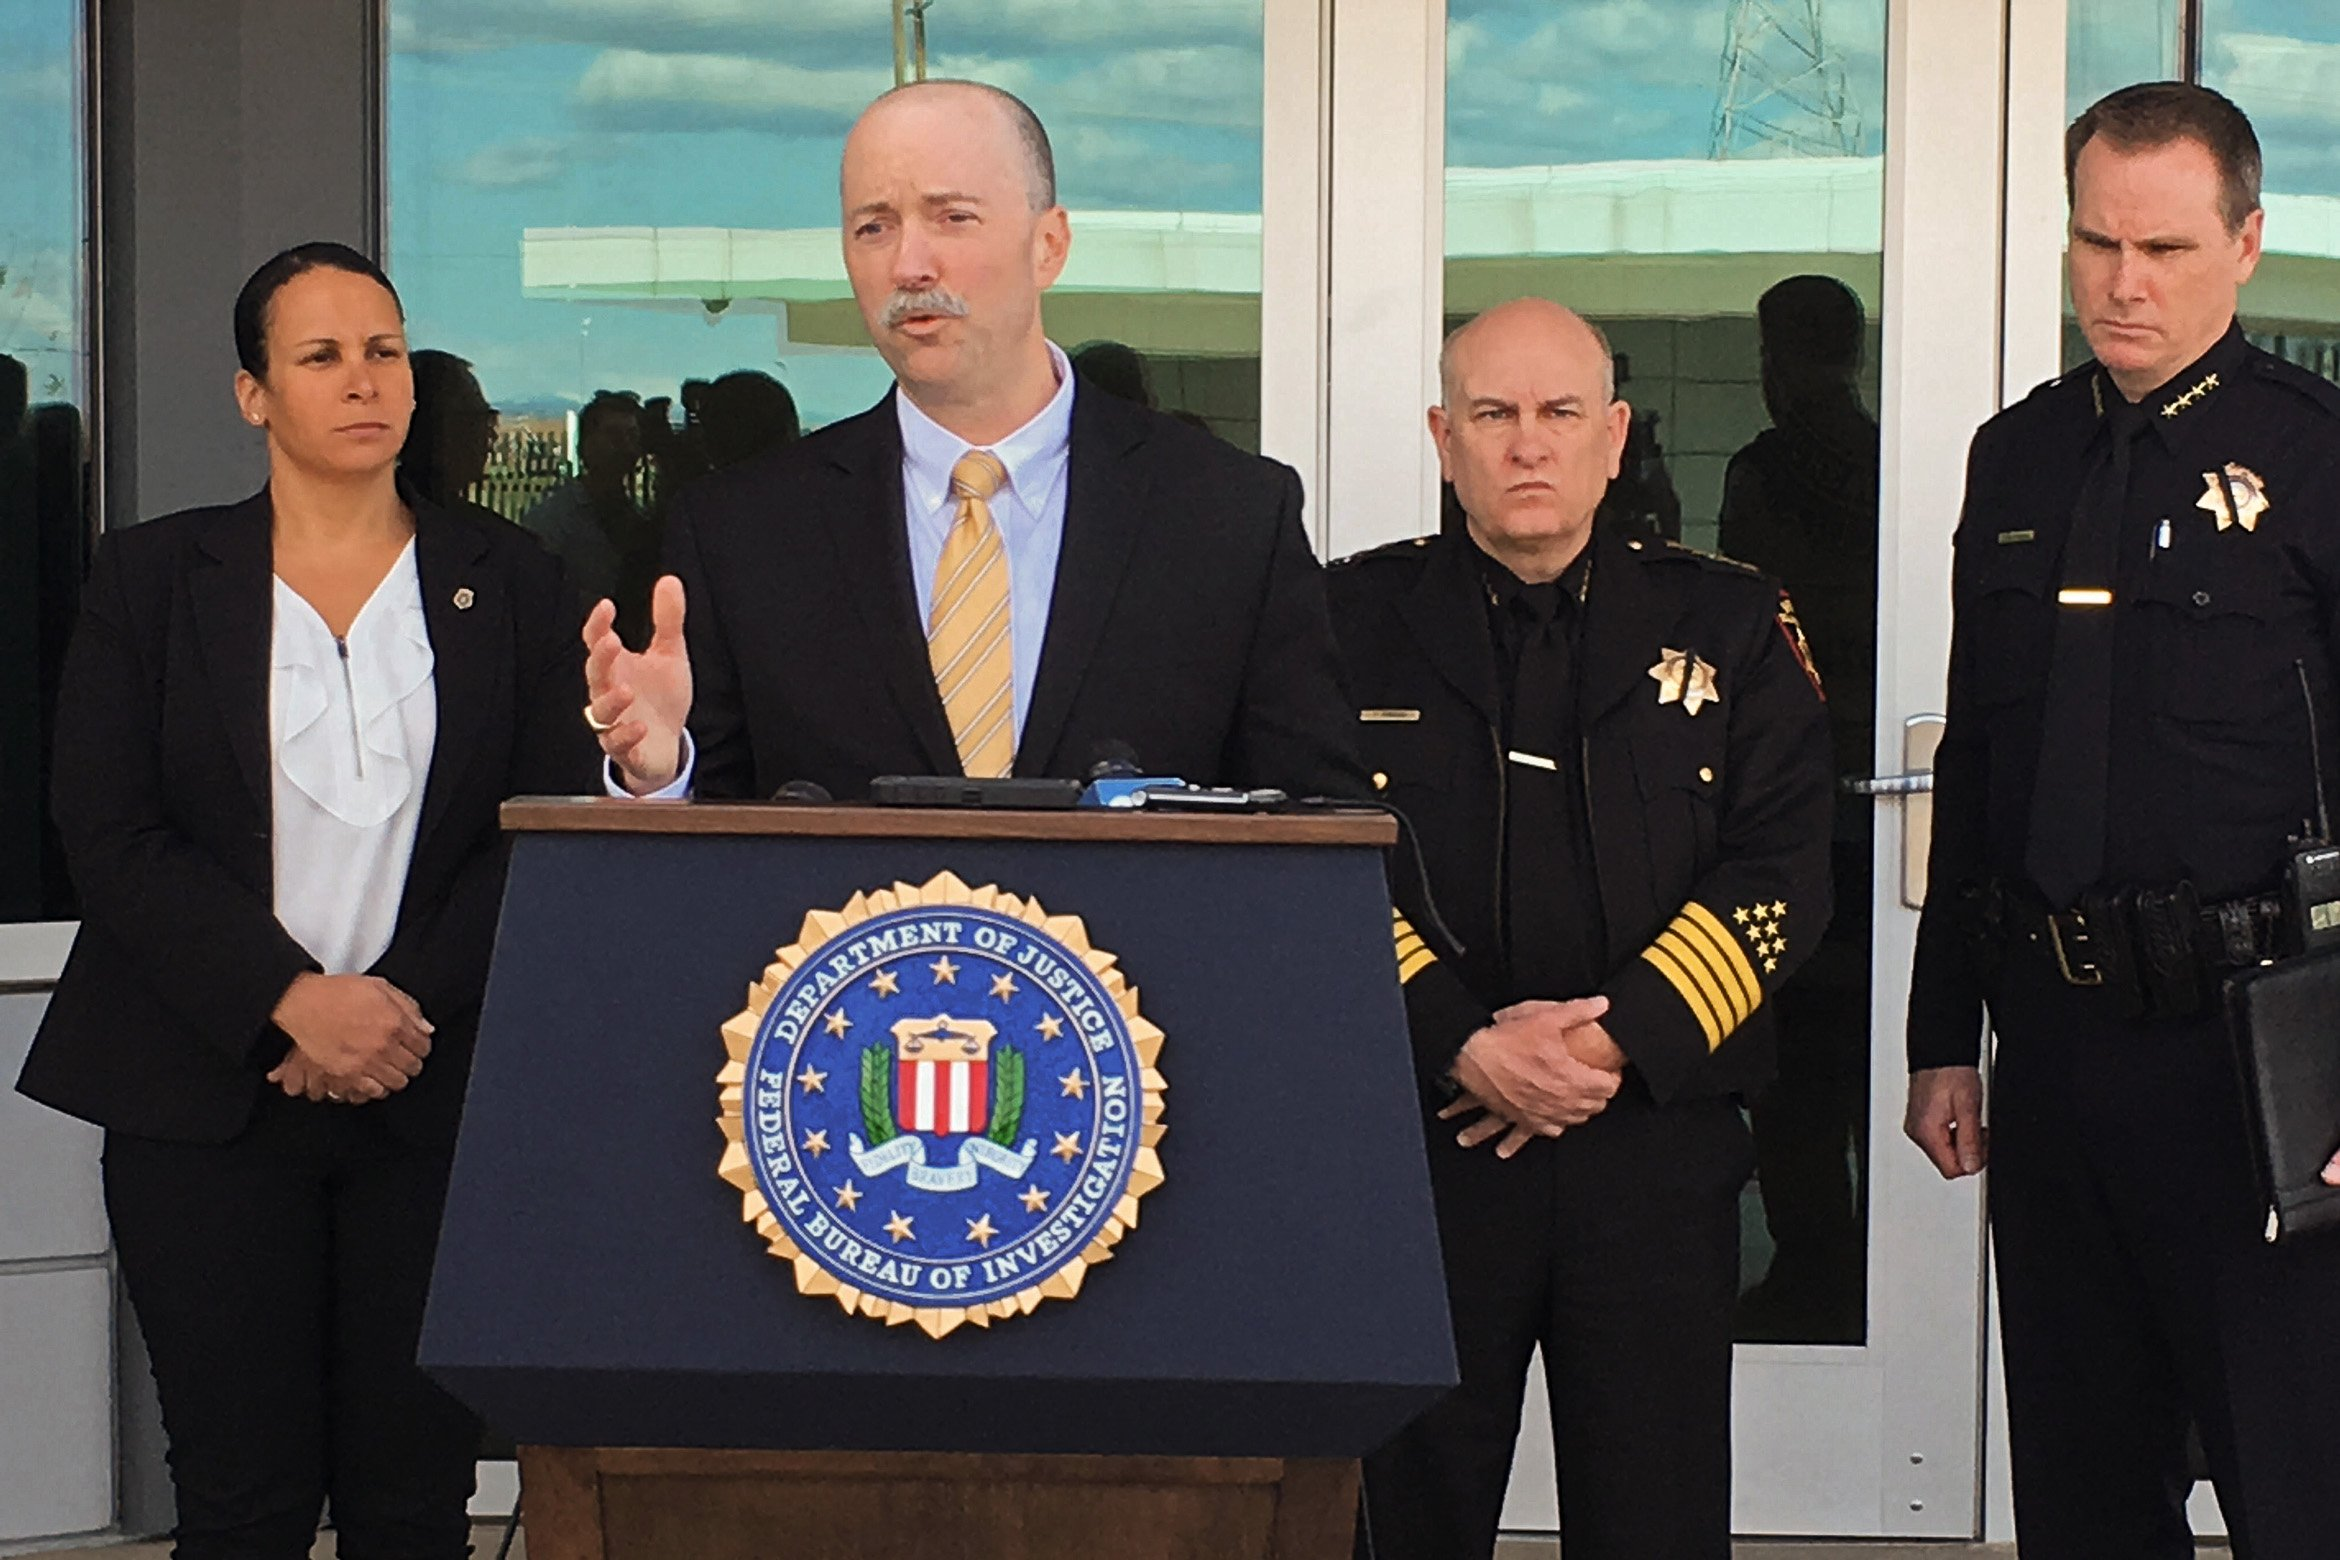 FBI Special Agent in Charge Sean Ragan speaks to reporters at a press conference in Fairfield, Calif. in 2018. Solano County Sheriff Tom Ferrara, second from right, has recently sought to downplay concerns about possible far-right extremism in his agency following an investigation by Open Vallejo.